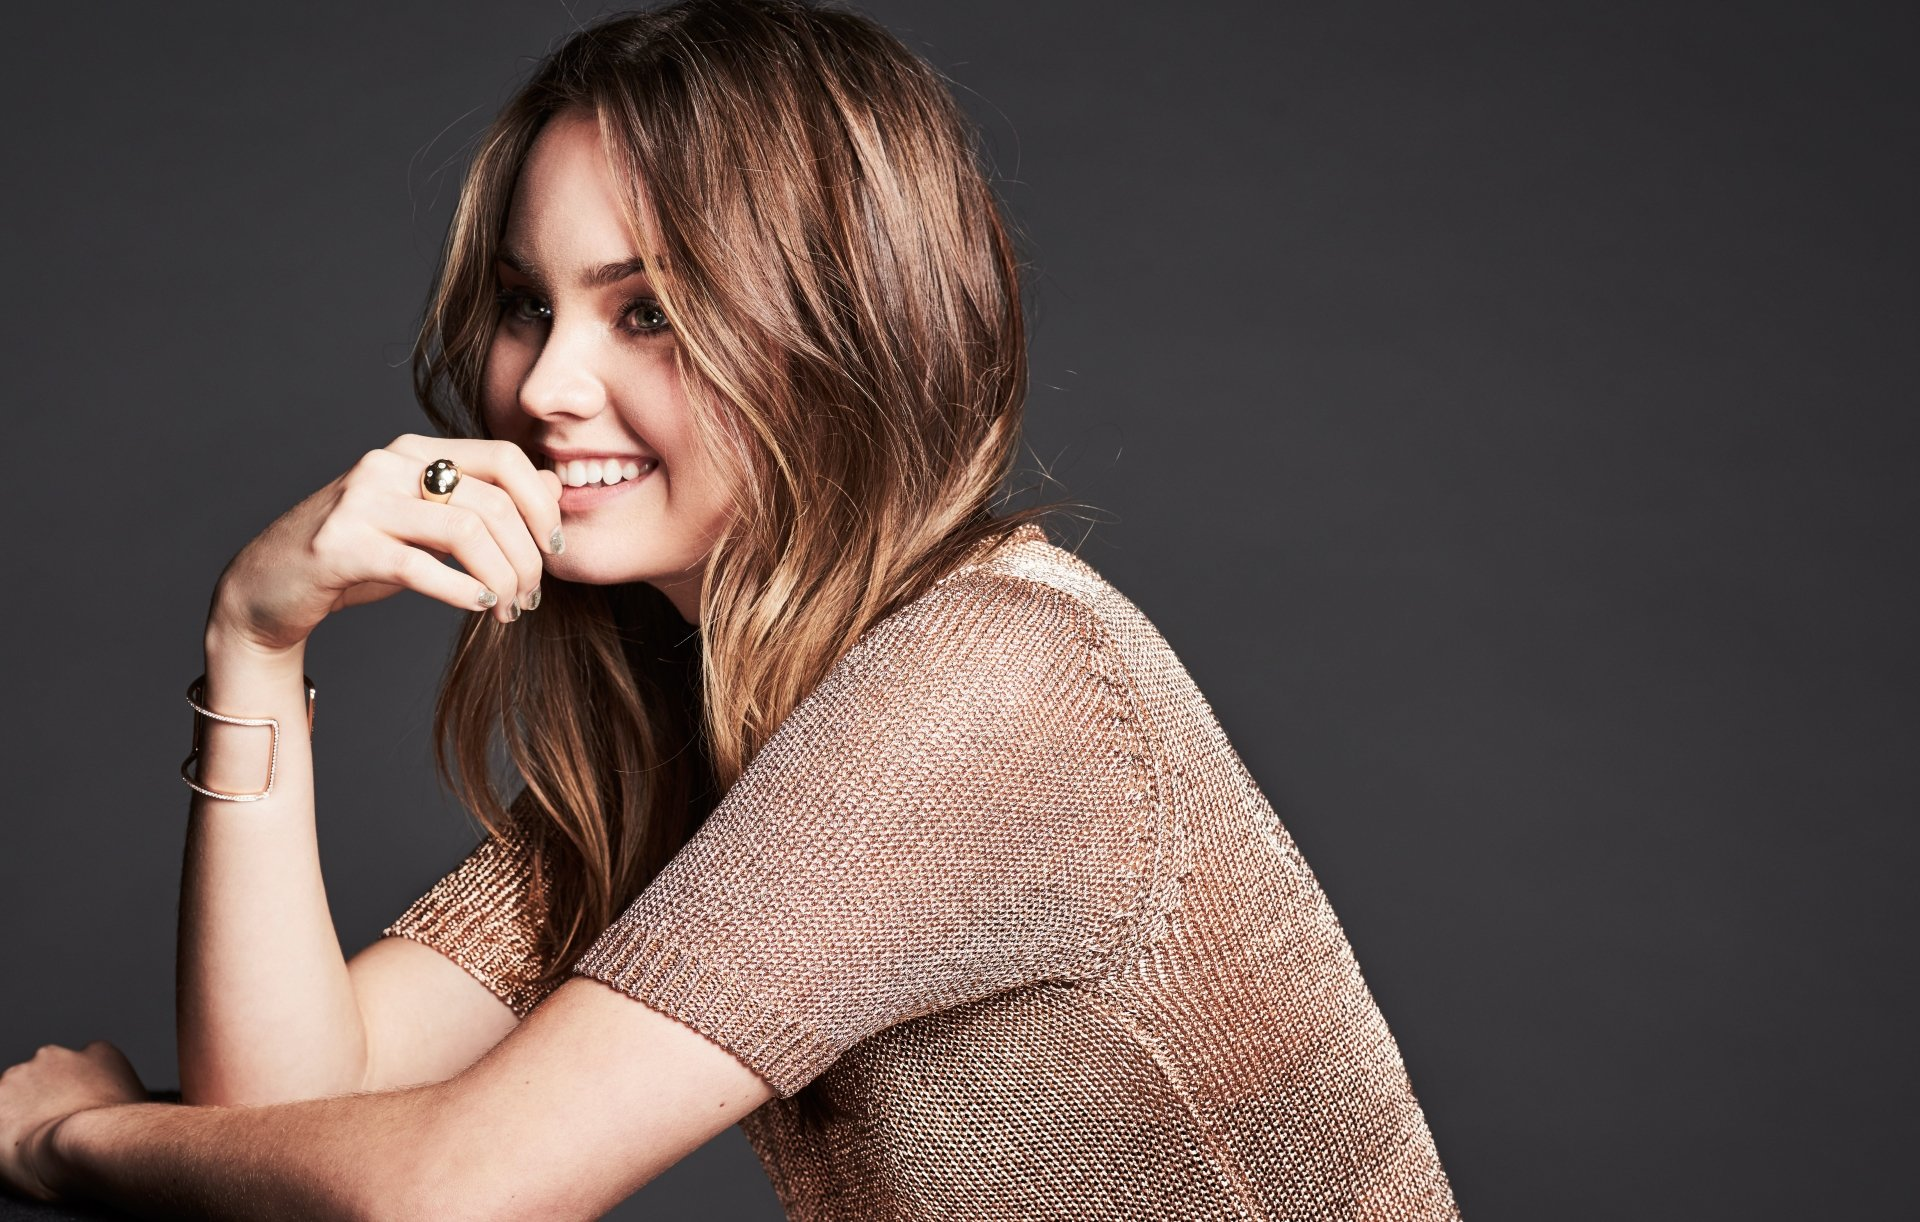 Women - Liana Liberato  Actress American Brunette Green Eyes Smile Wallpaper